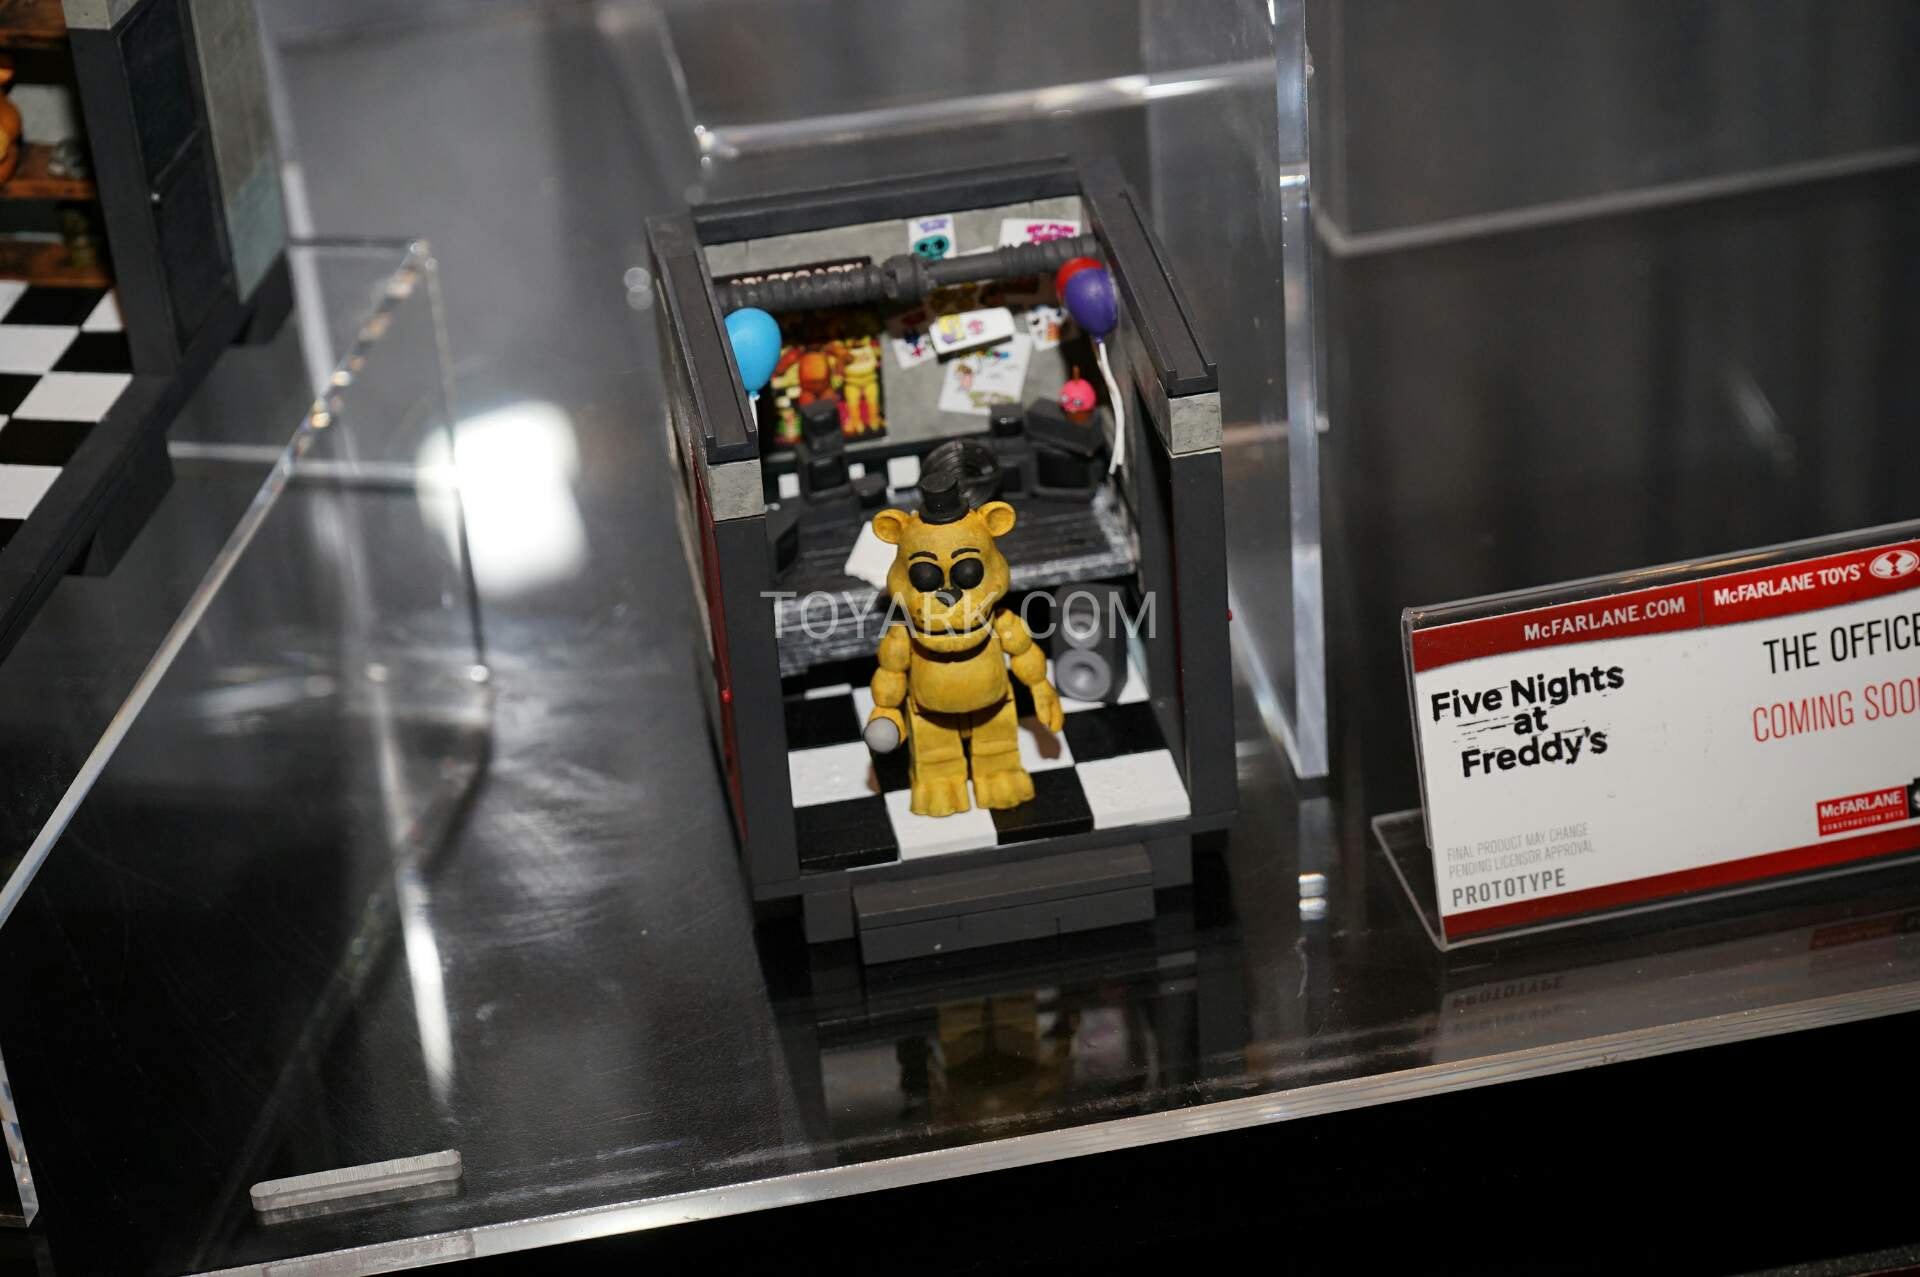 More five nights at freddy s construction sets coming soon - Tf 2016 Mcfarlane Five Nights Construction 002